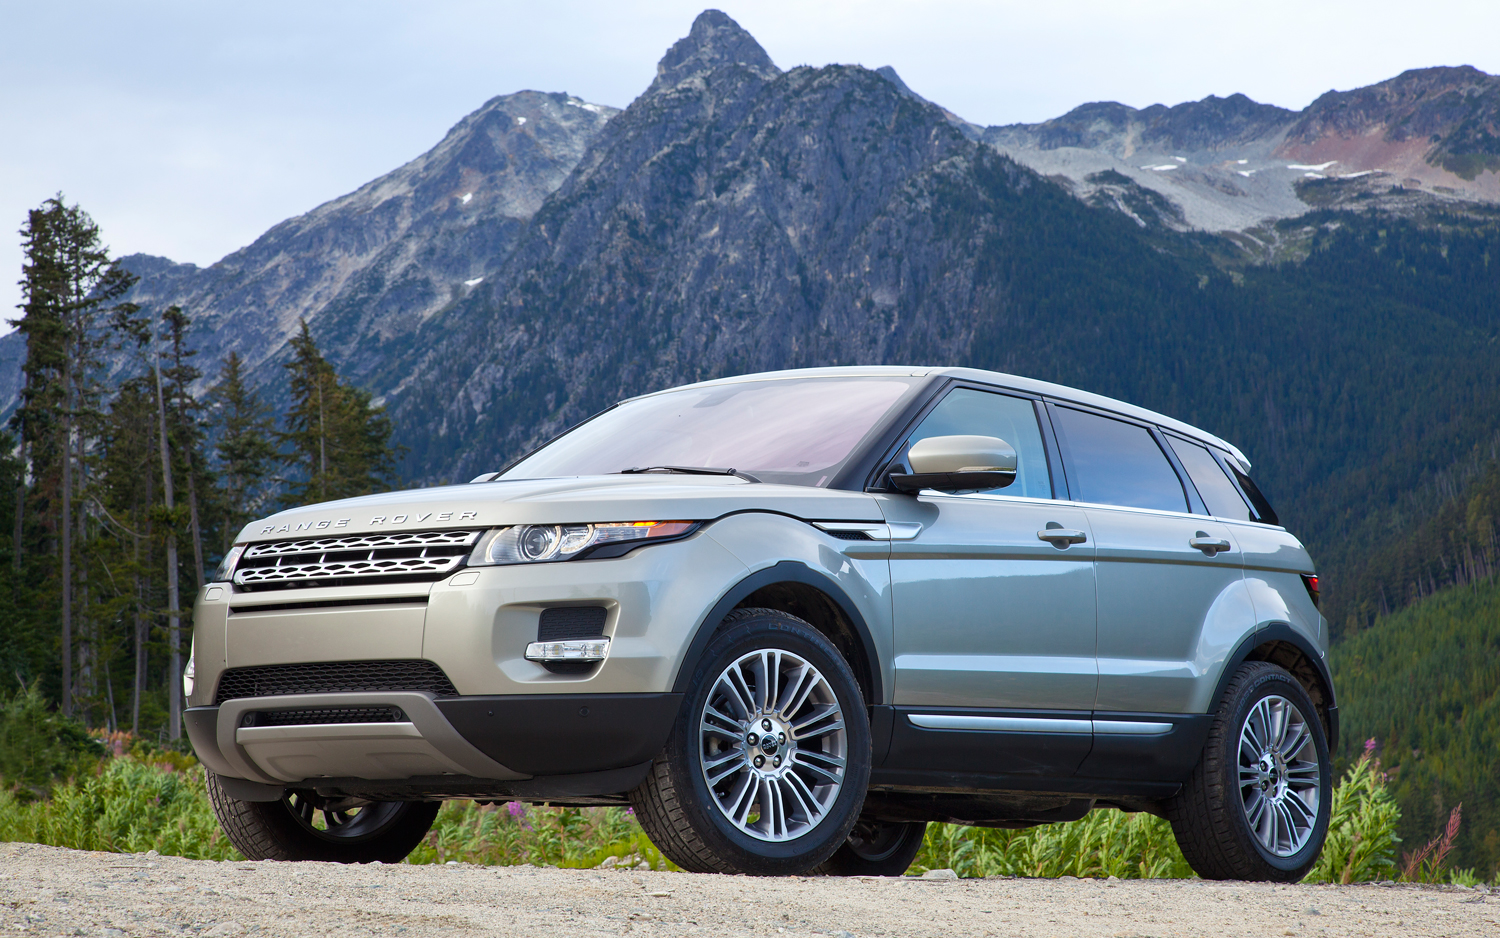 Land Rover Image 12